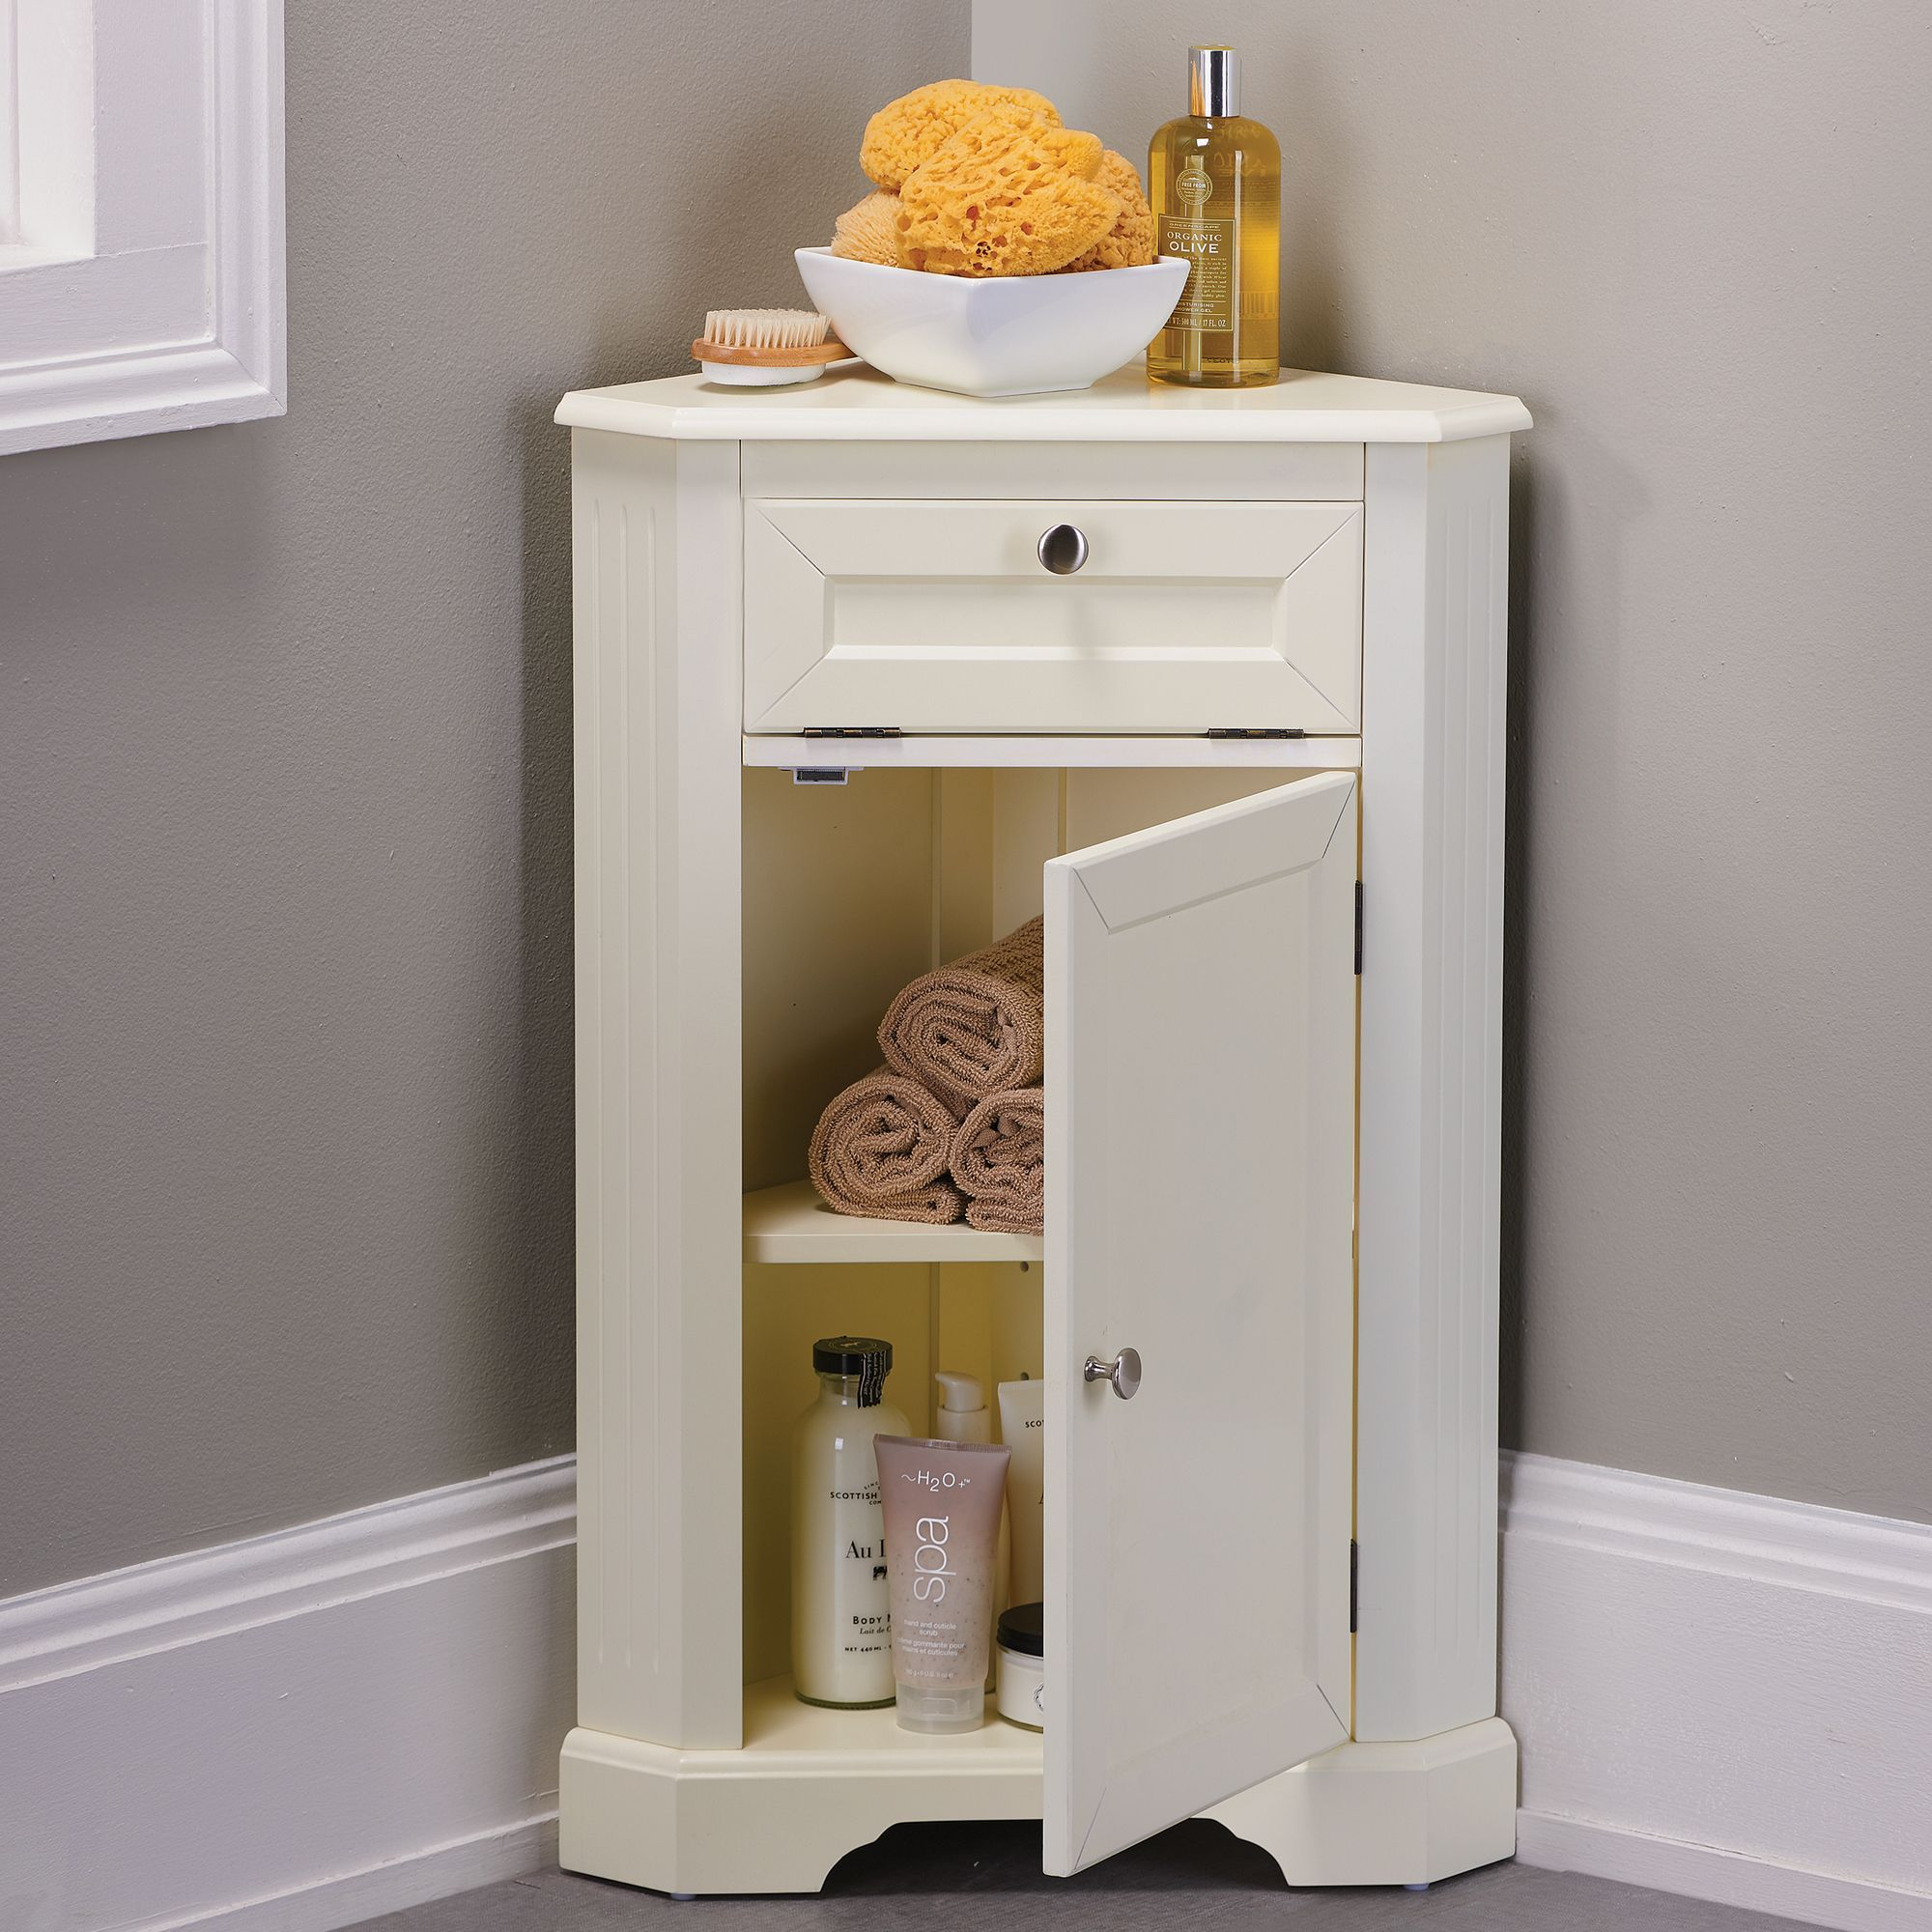 Maximize Storage Space In Small Bathrooms With Our Weatherby Corner Storage Cab Bathroom Corner Storage Cabinet Small Bathroom Cabinets Bathroom Corner Storage